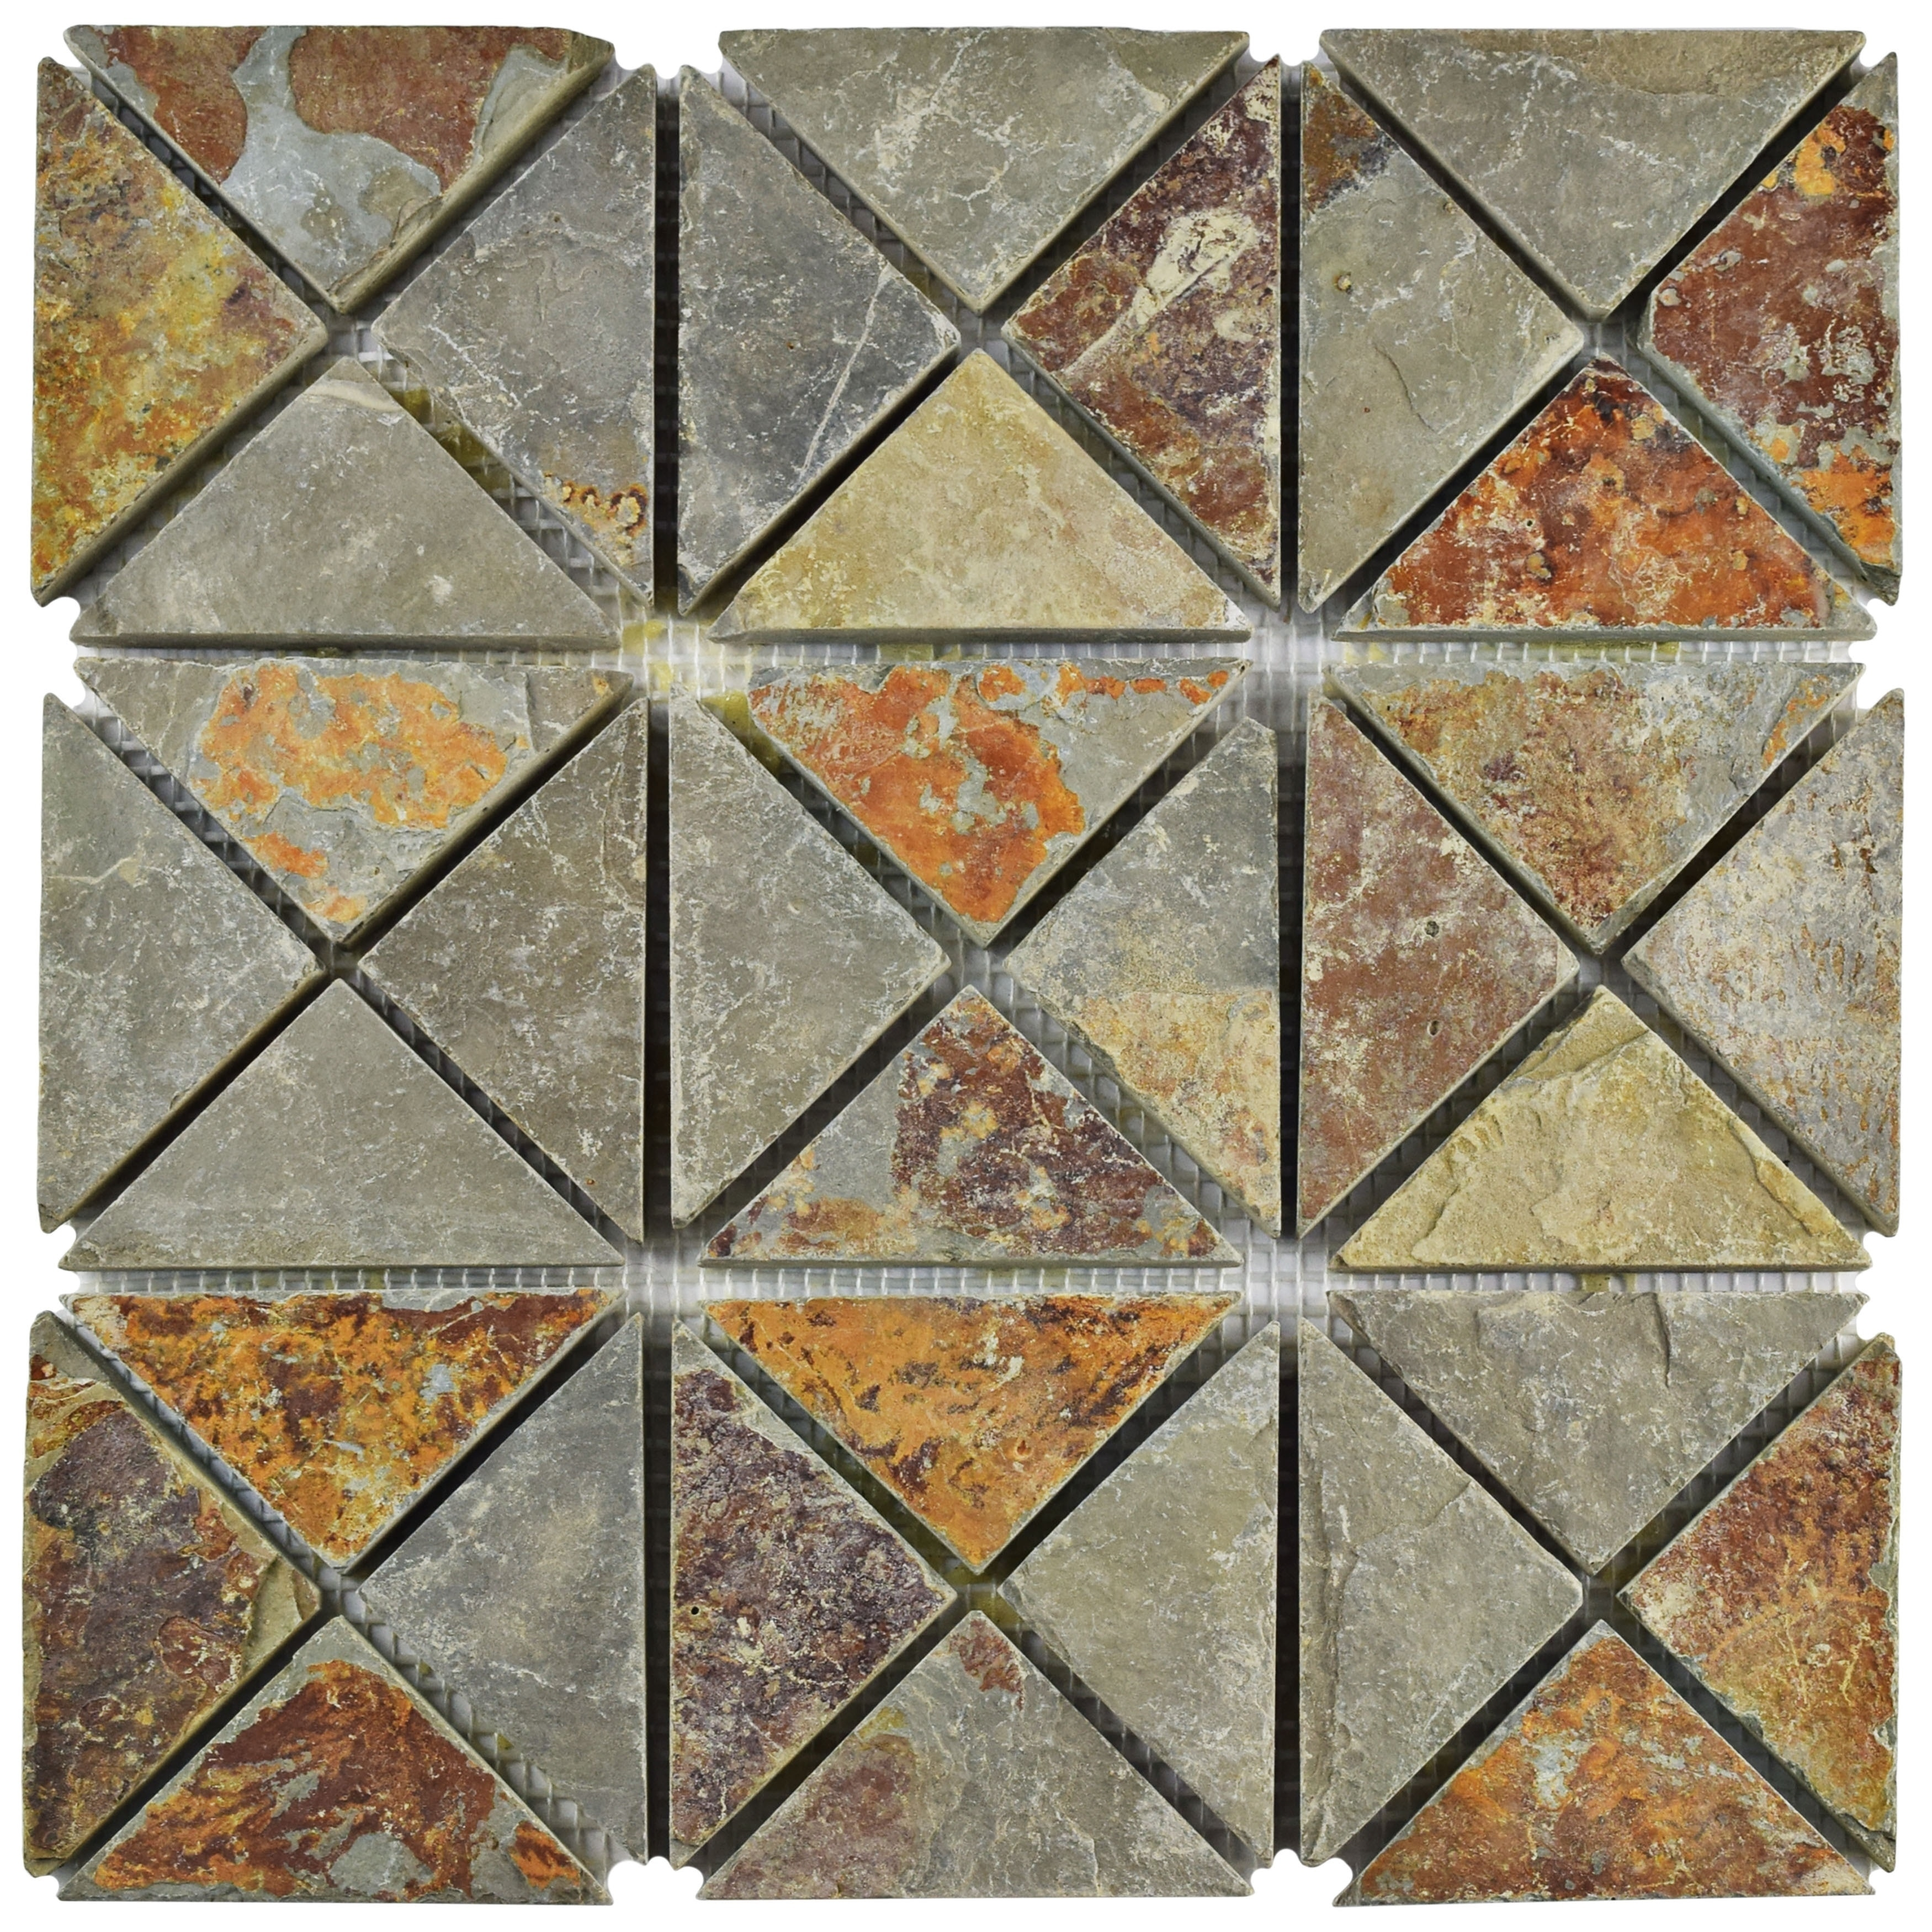 Somertile 12x12-inch Ridge TriSquare Sunset Slate Natural Stone Floor and Wall Tile (Case of 10) (Ridge TriSquare Sunset Slate), Beige, Size 12 x 12